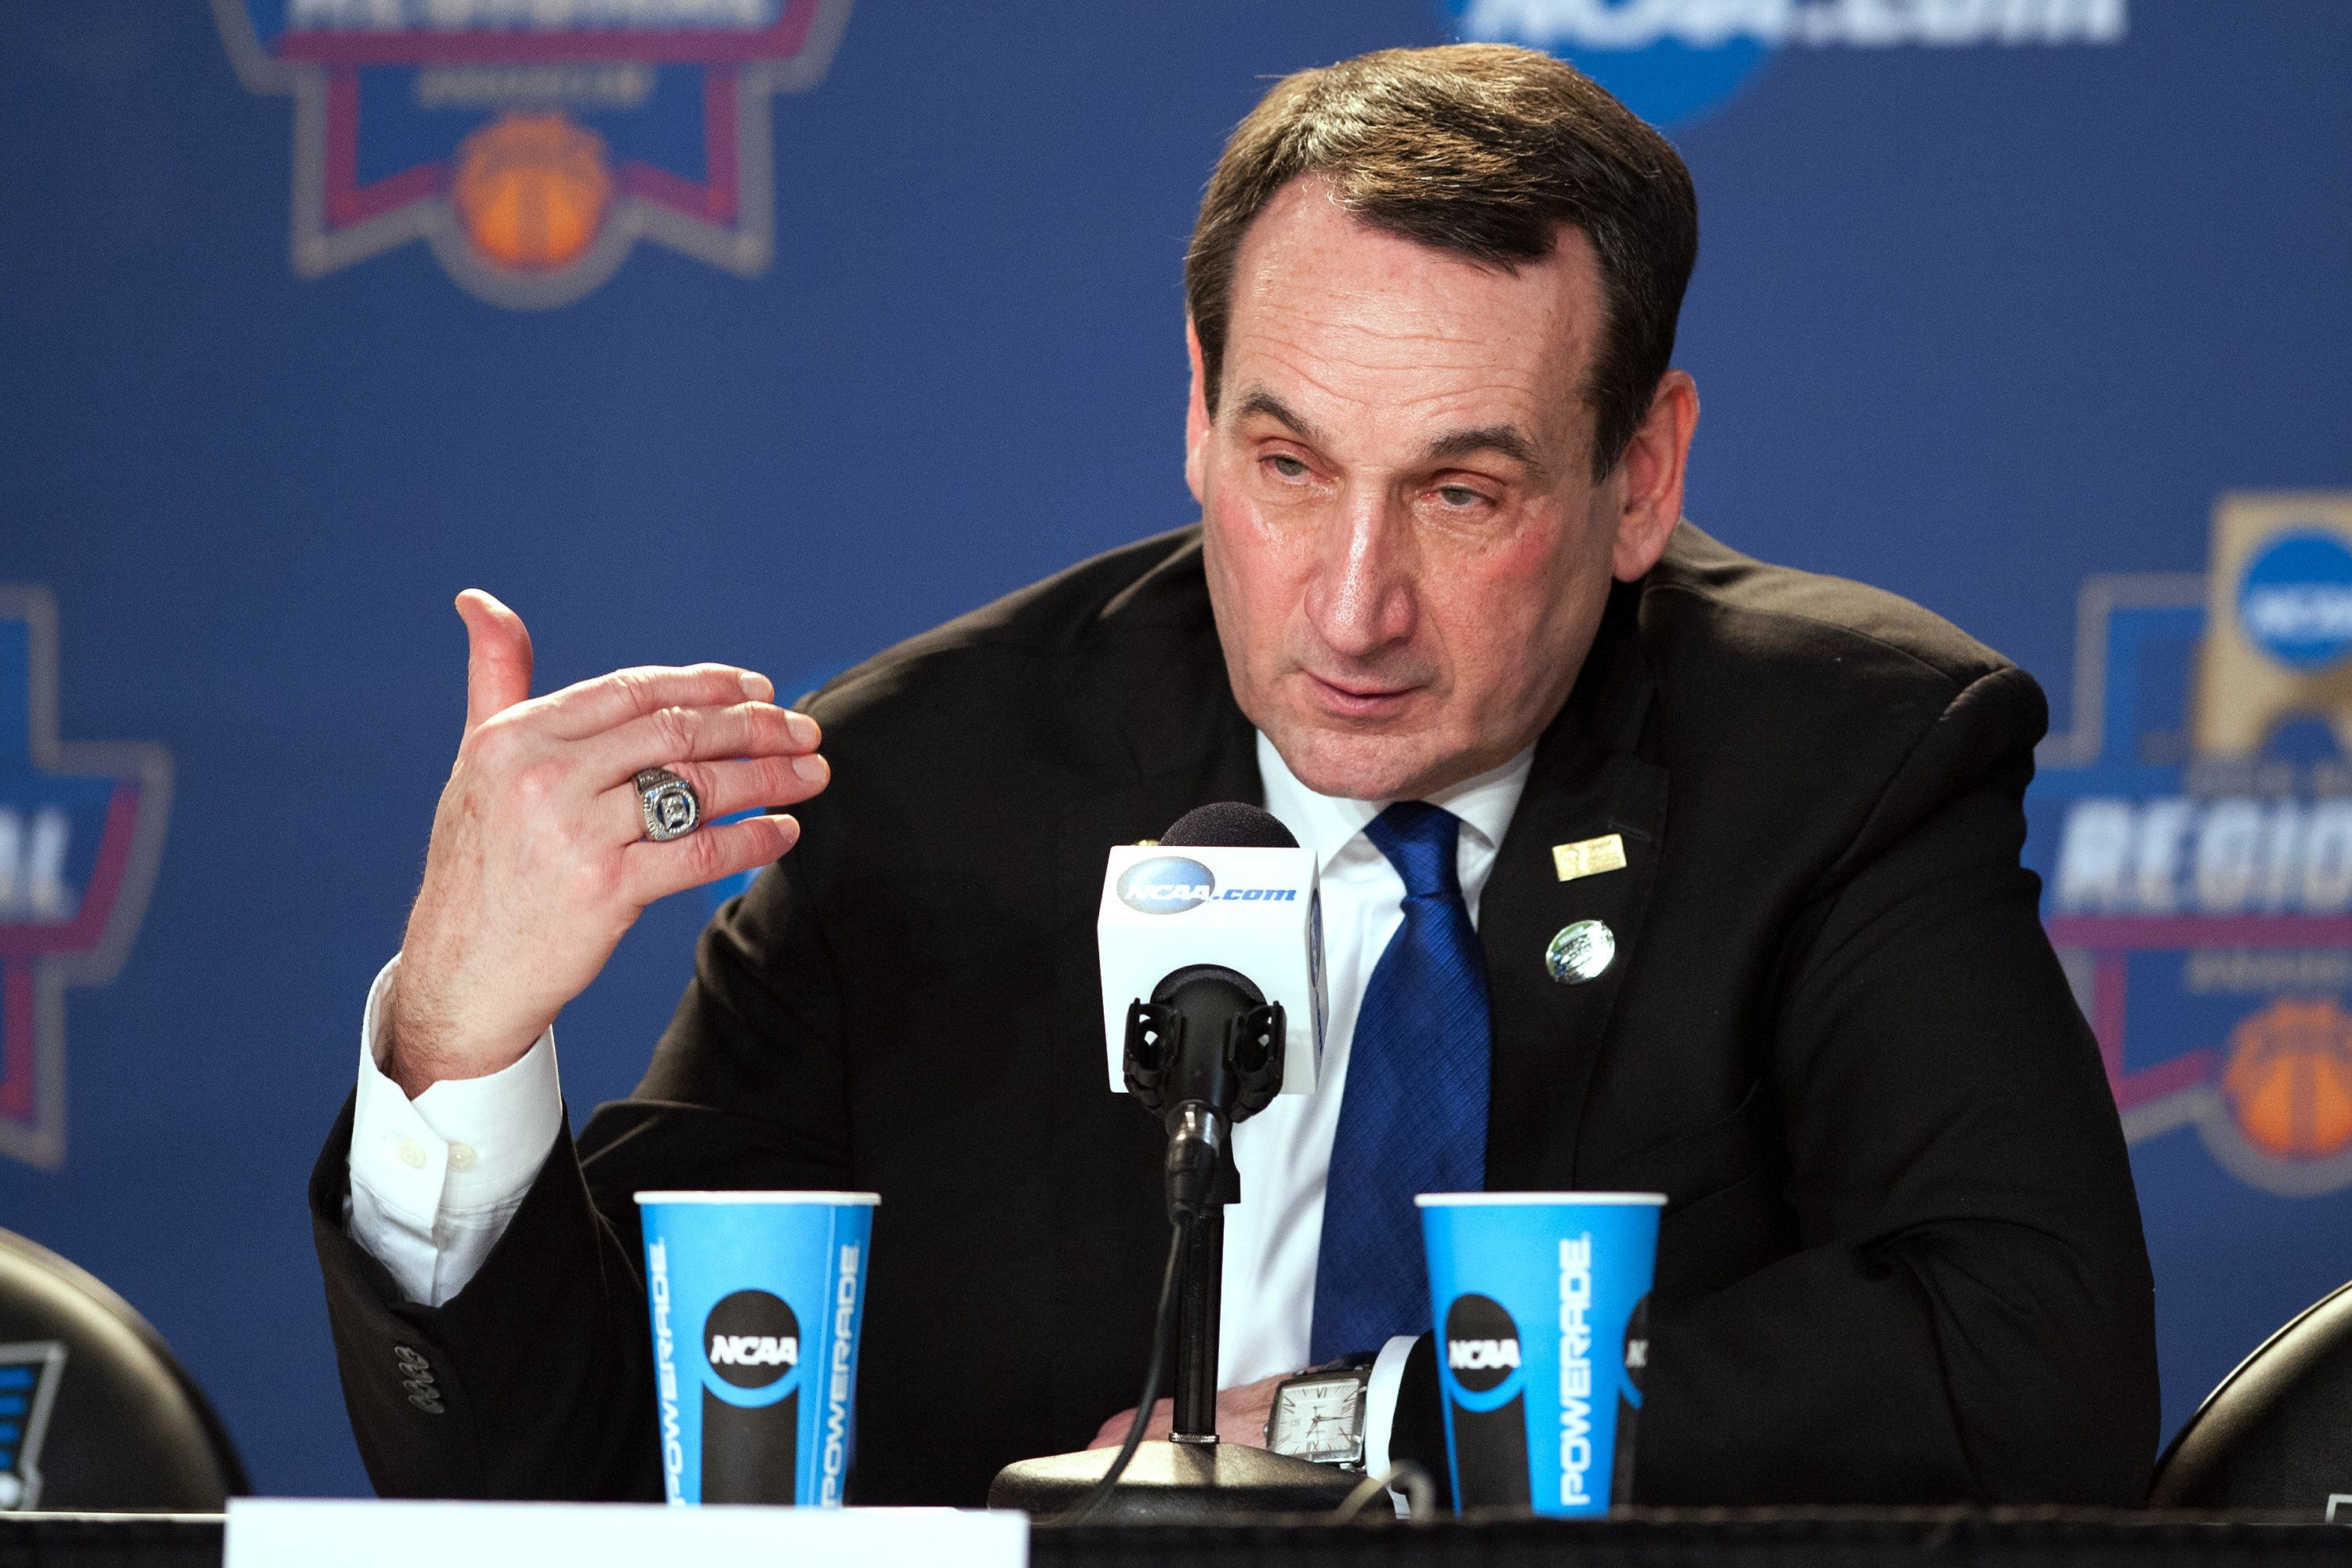 ANAHEIM, CA - MARCH 24: Head coach Mike Krzyzewski of the Duke Blue Devils addresses the media following their game against the Oregon Ducks during the West Regional Semifinal of the 2016 NCAA Men's Basketball Tournament at Honda Center on March 24, 2016 in Anaheim, California. (Photo by Lance King/Getty Images)